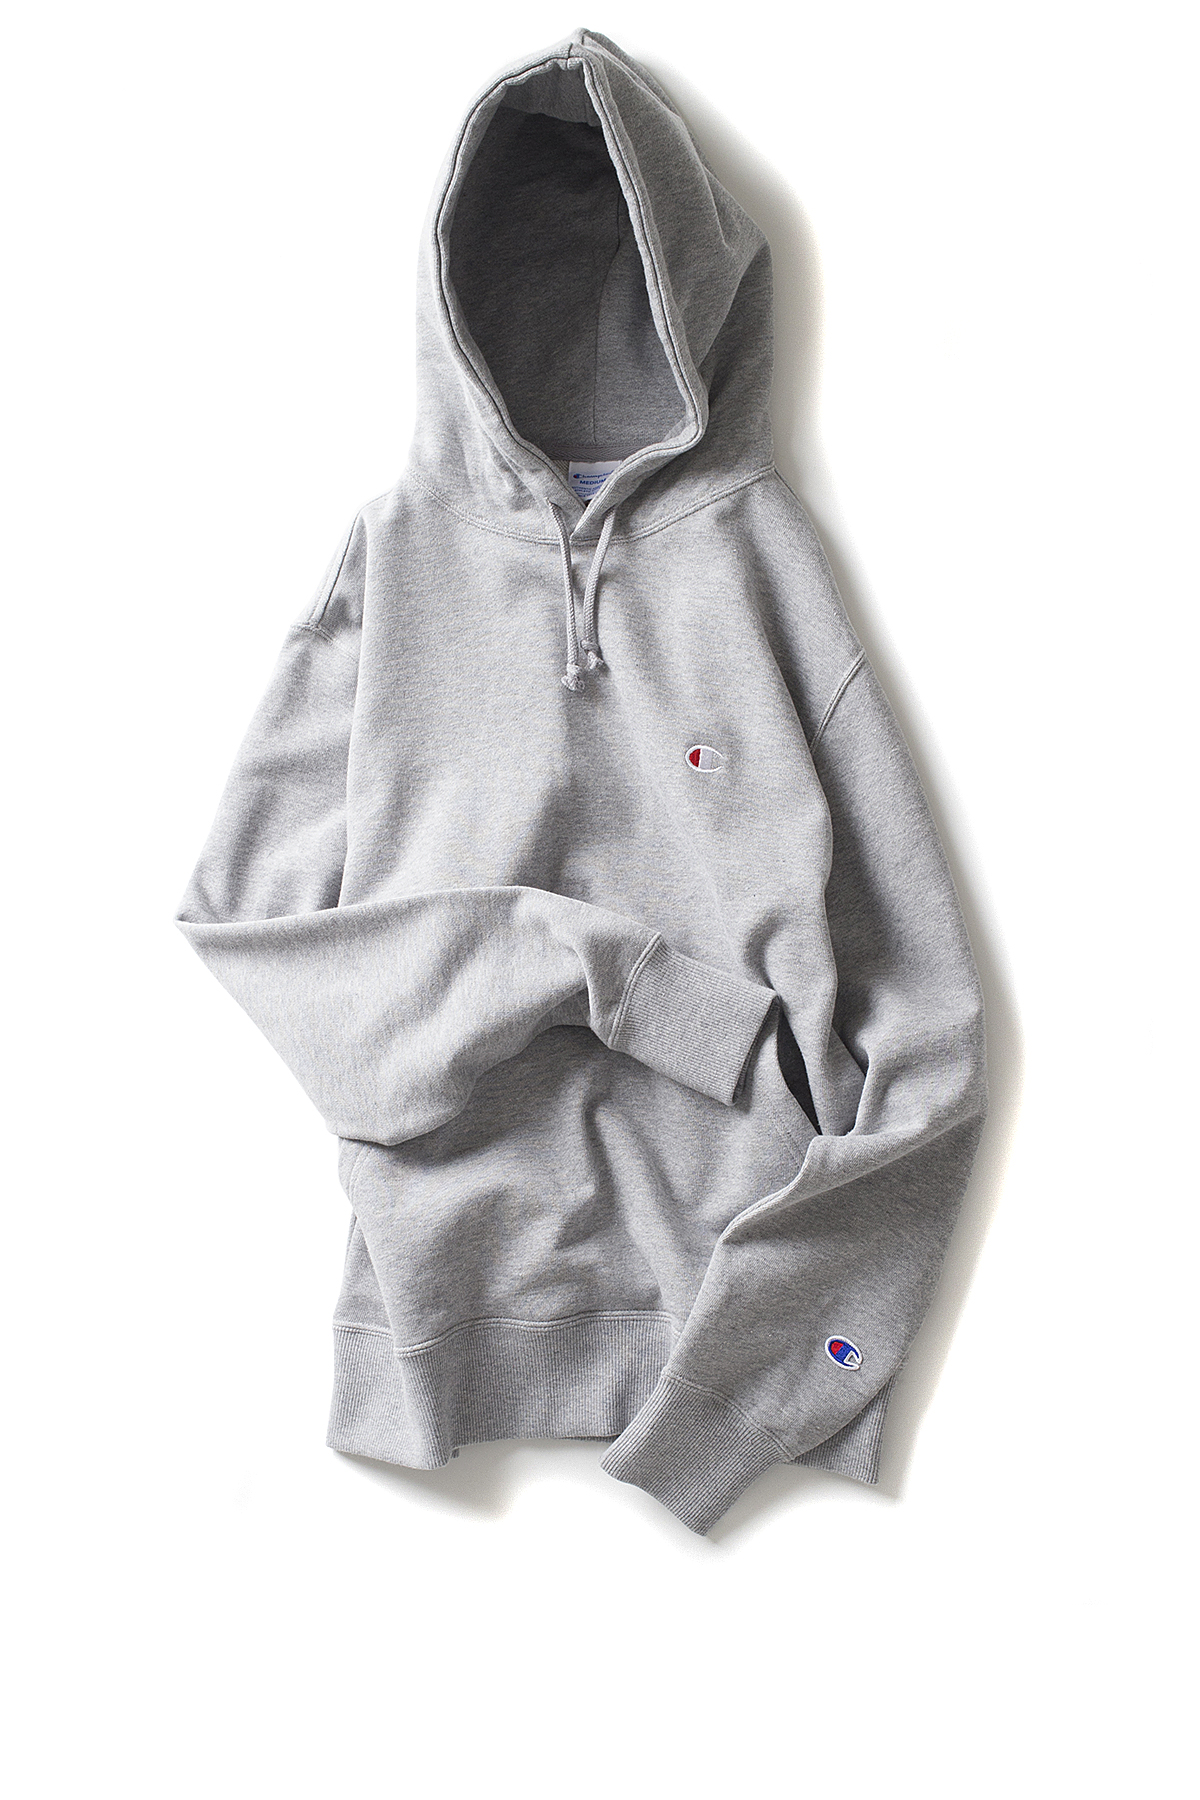 Champion : Basic Pullover Sweatshirt (Oxford Gray)